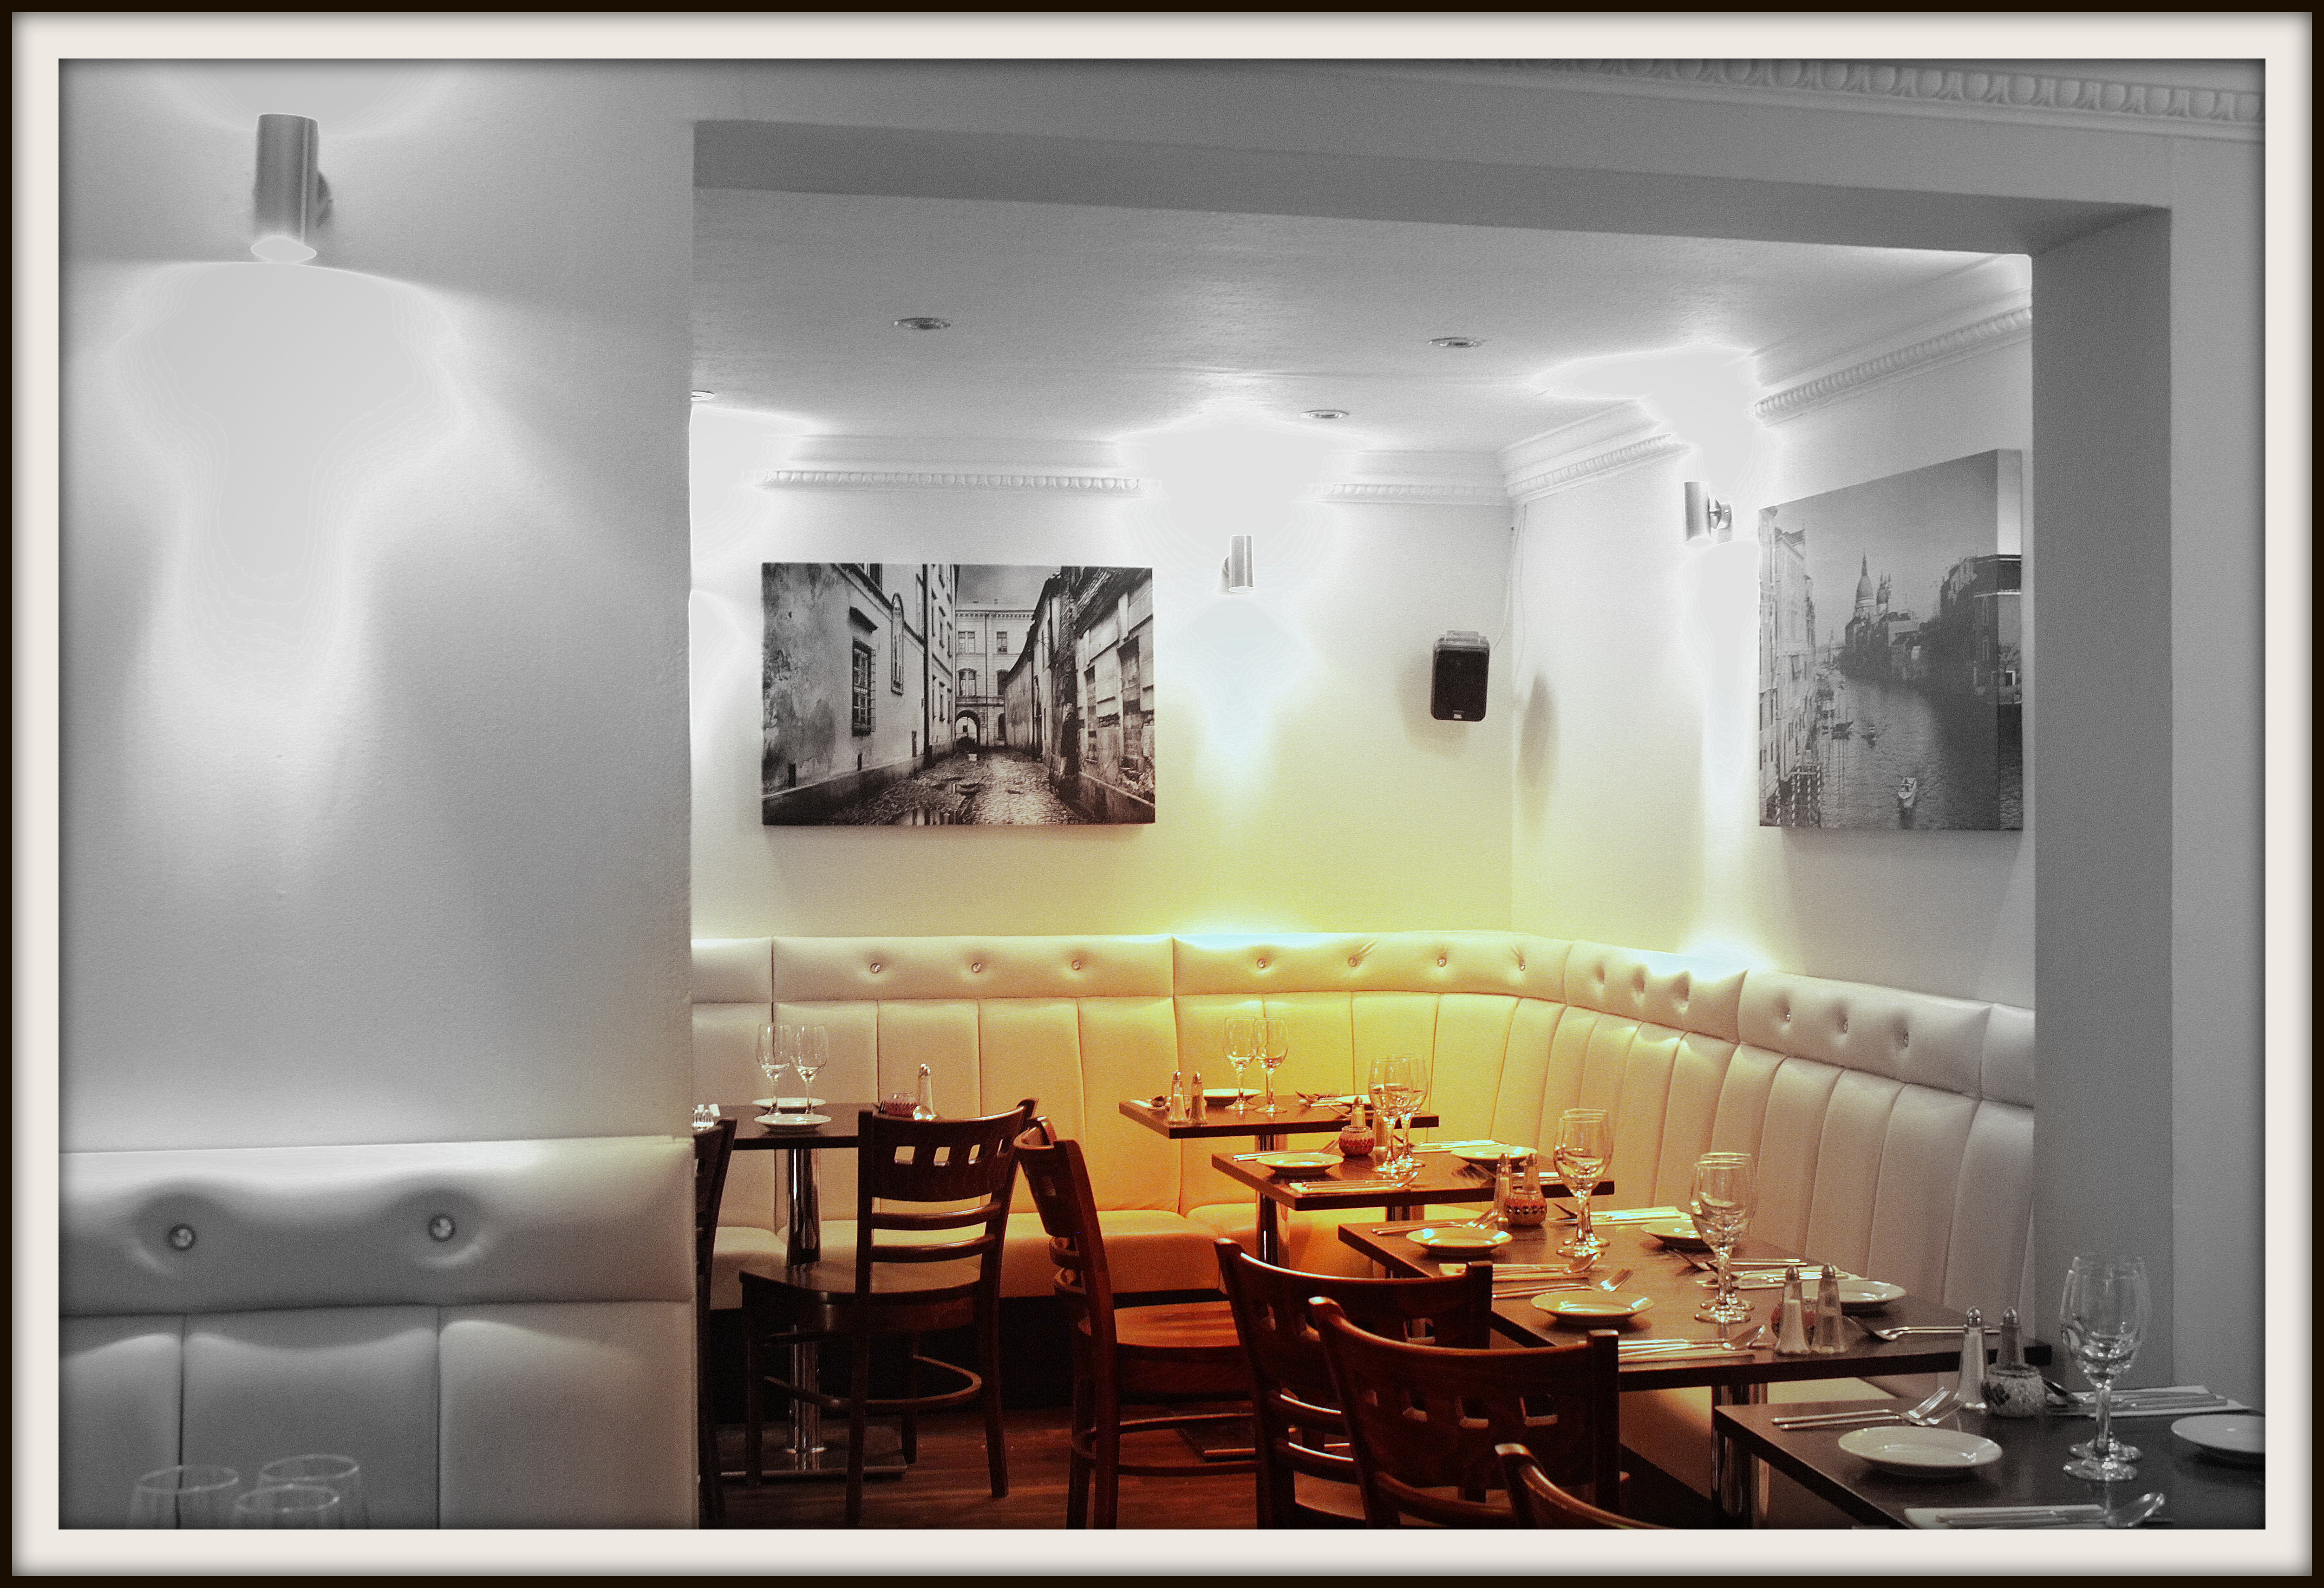 A Little Taste of Italy - Ristorante Teatro - Glasgow